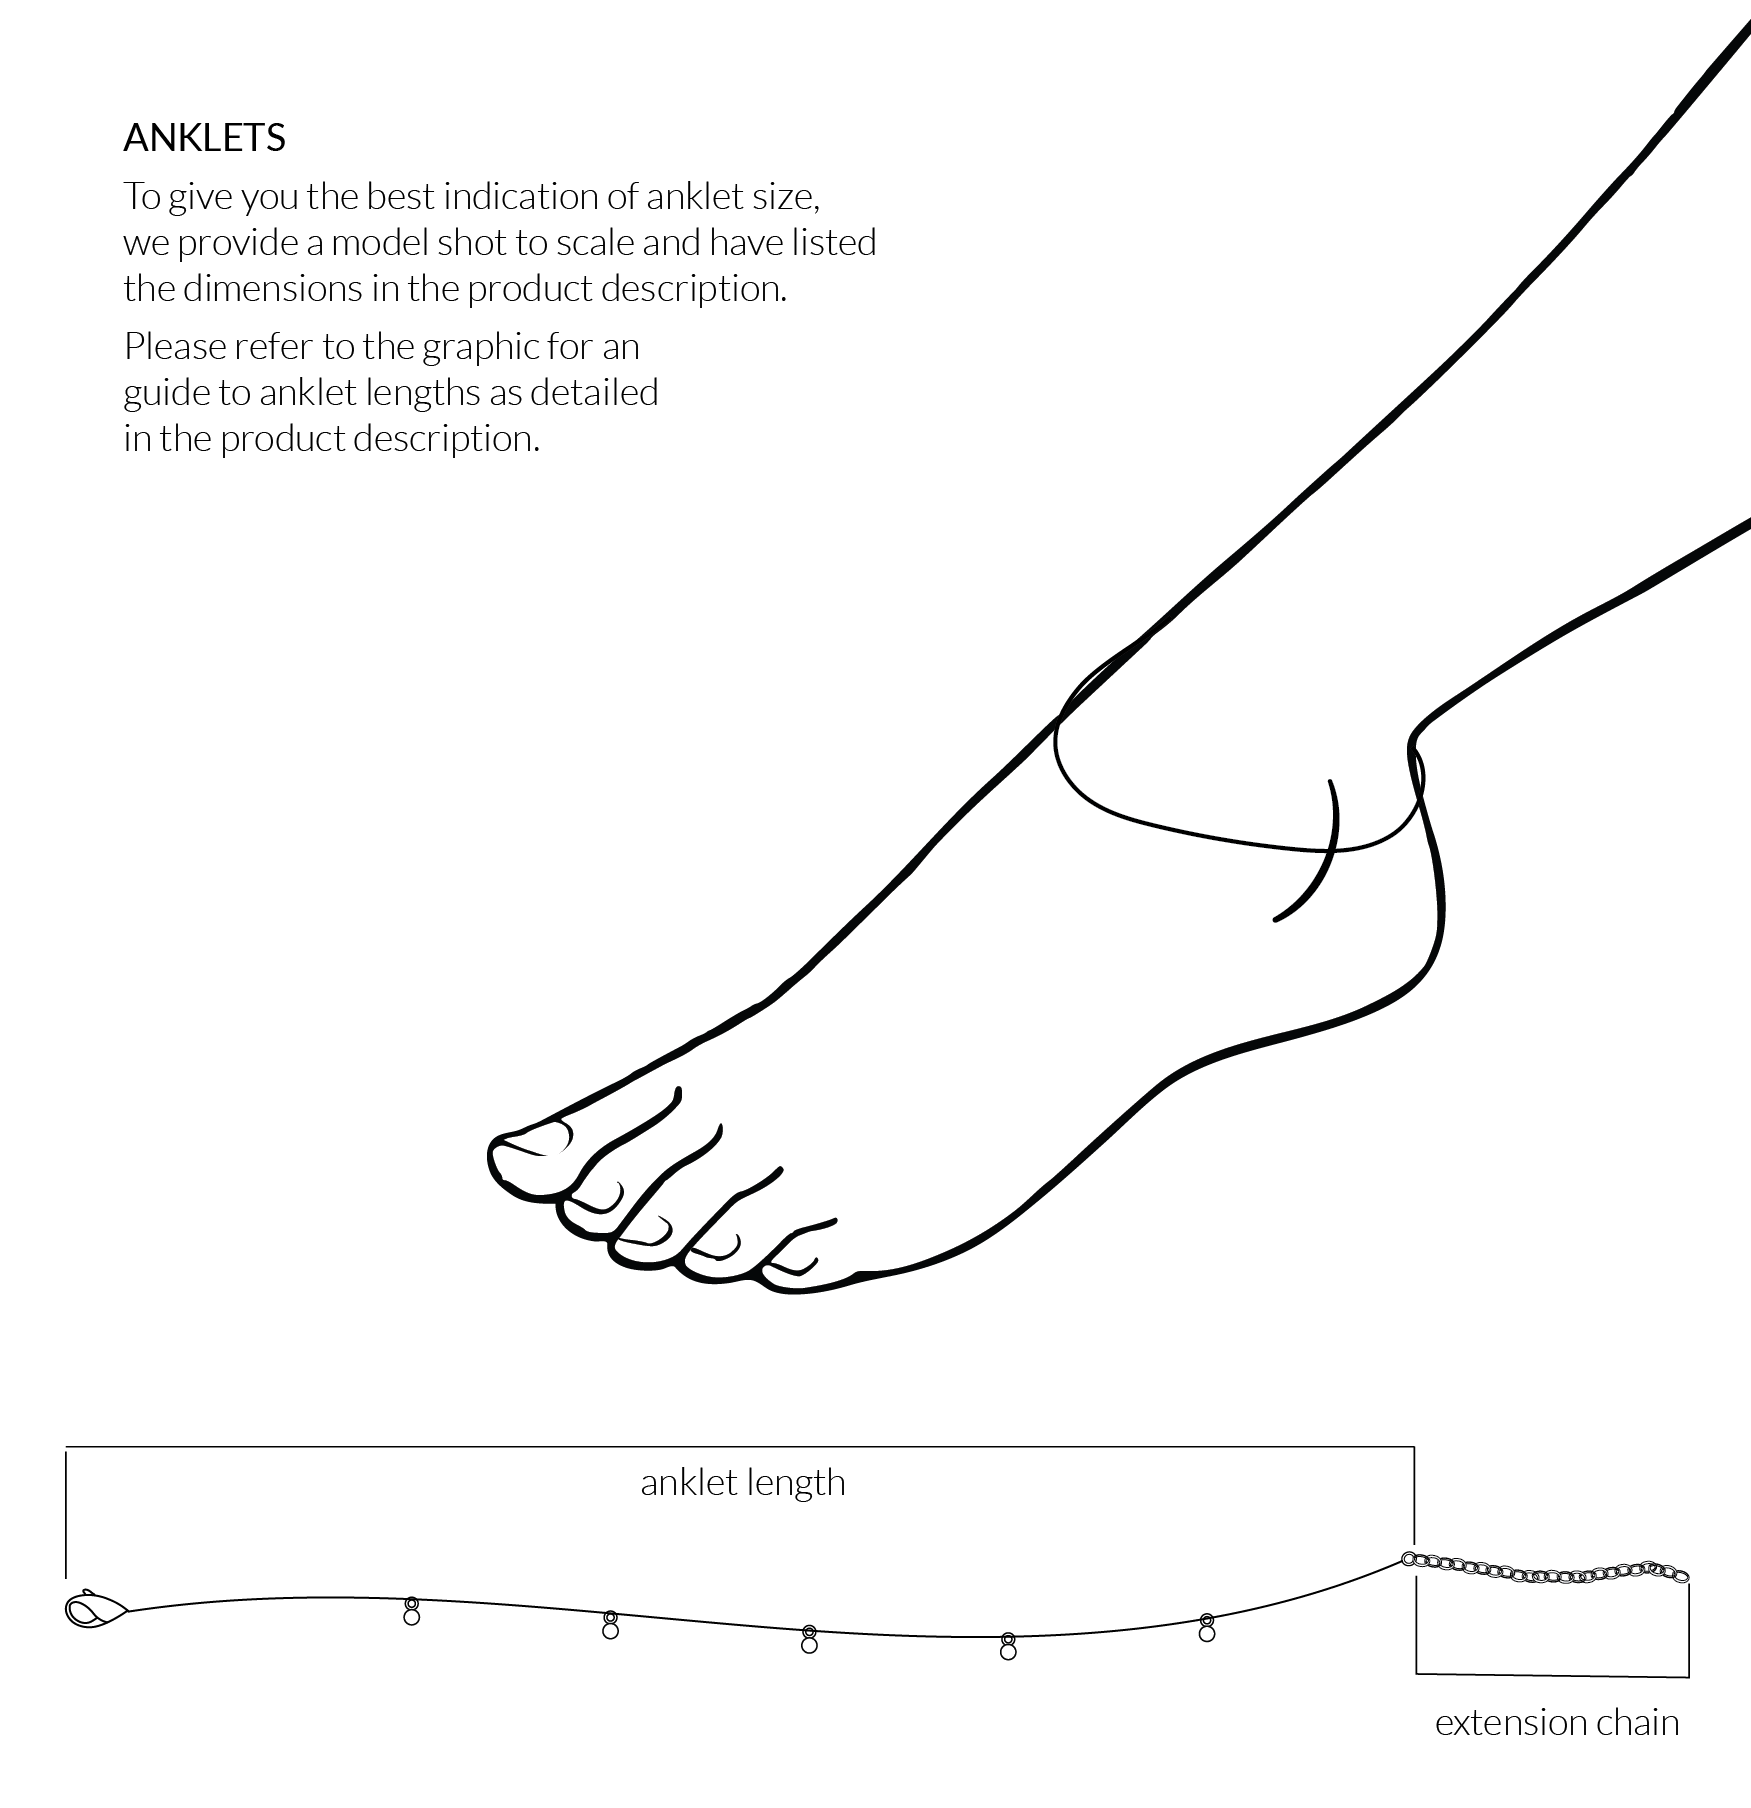 Anklet Sizing Guide